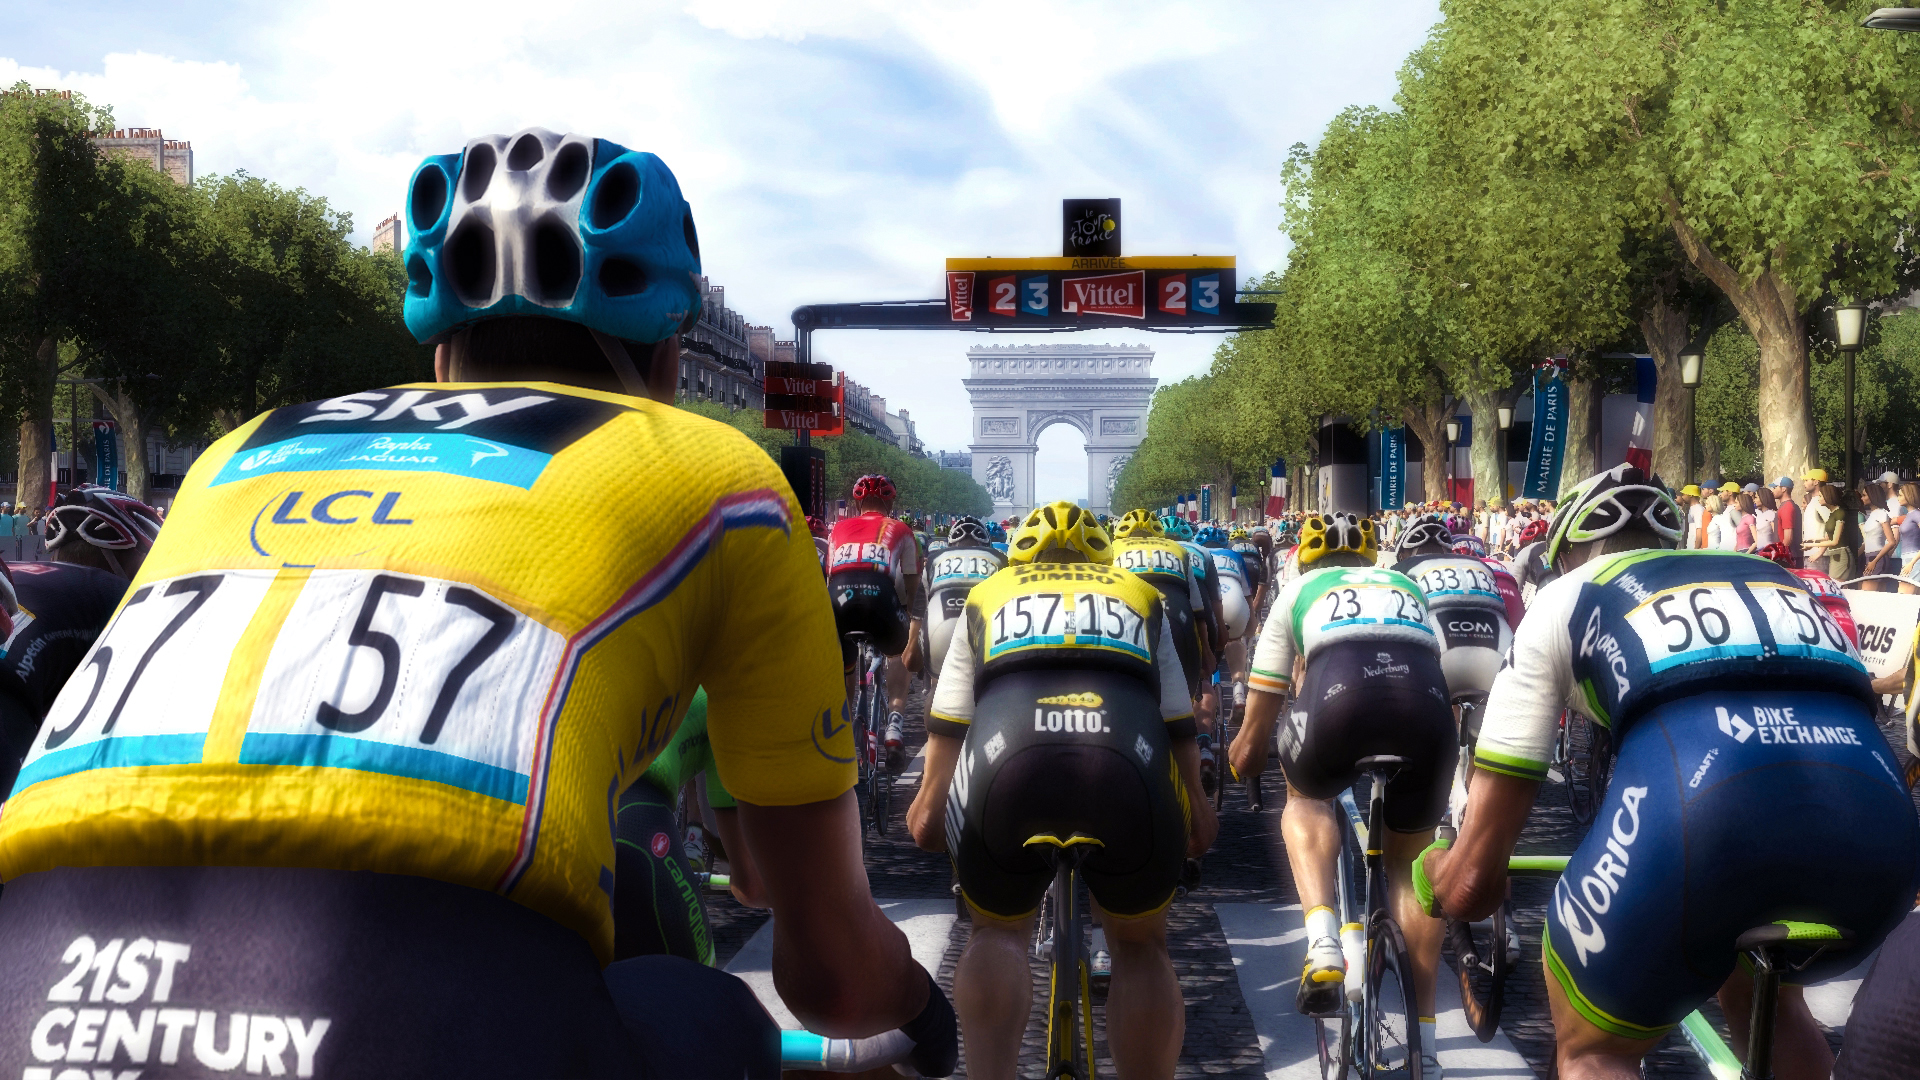 tour de france 2016 available now on xbox one ps4 and pc thexboxhub. Black Bedroom Furniture Sets. Home Design Ideas